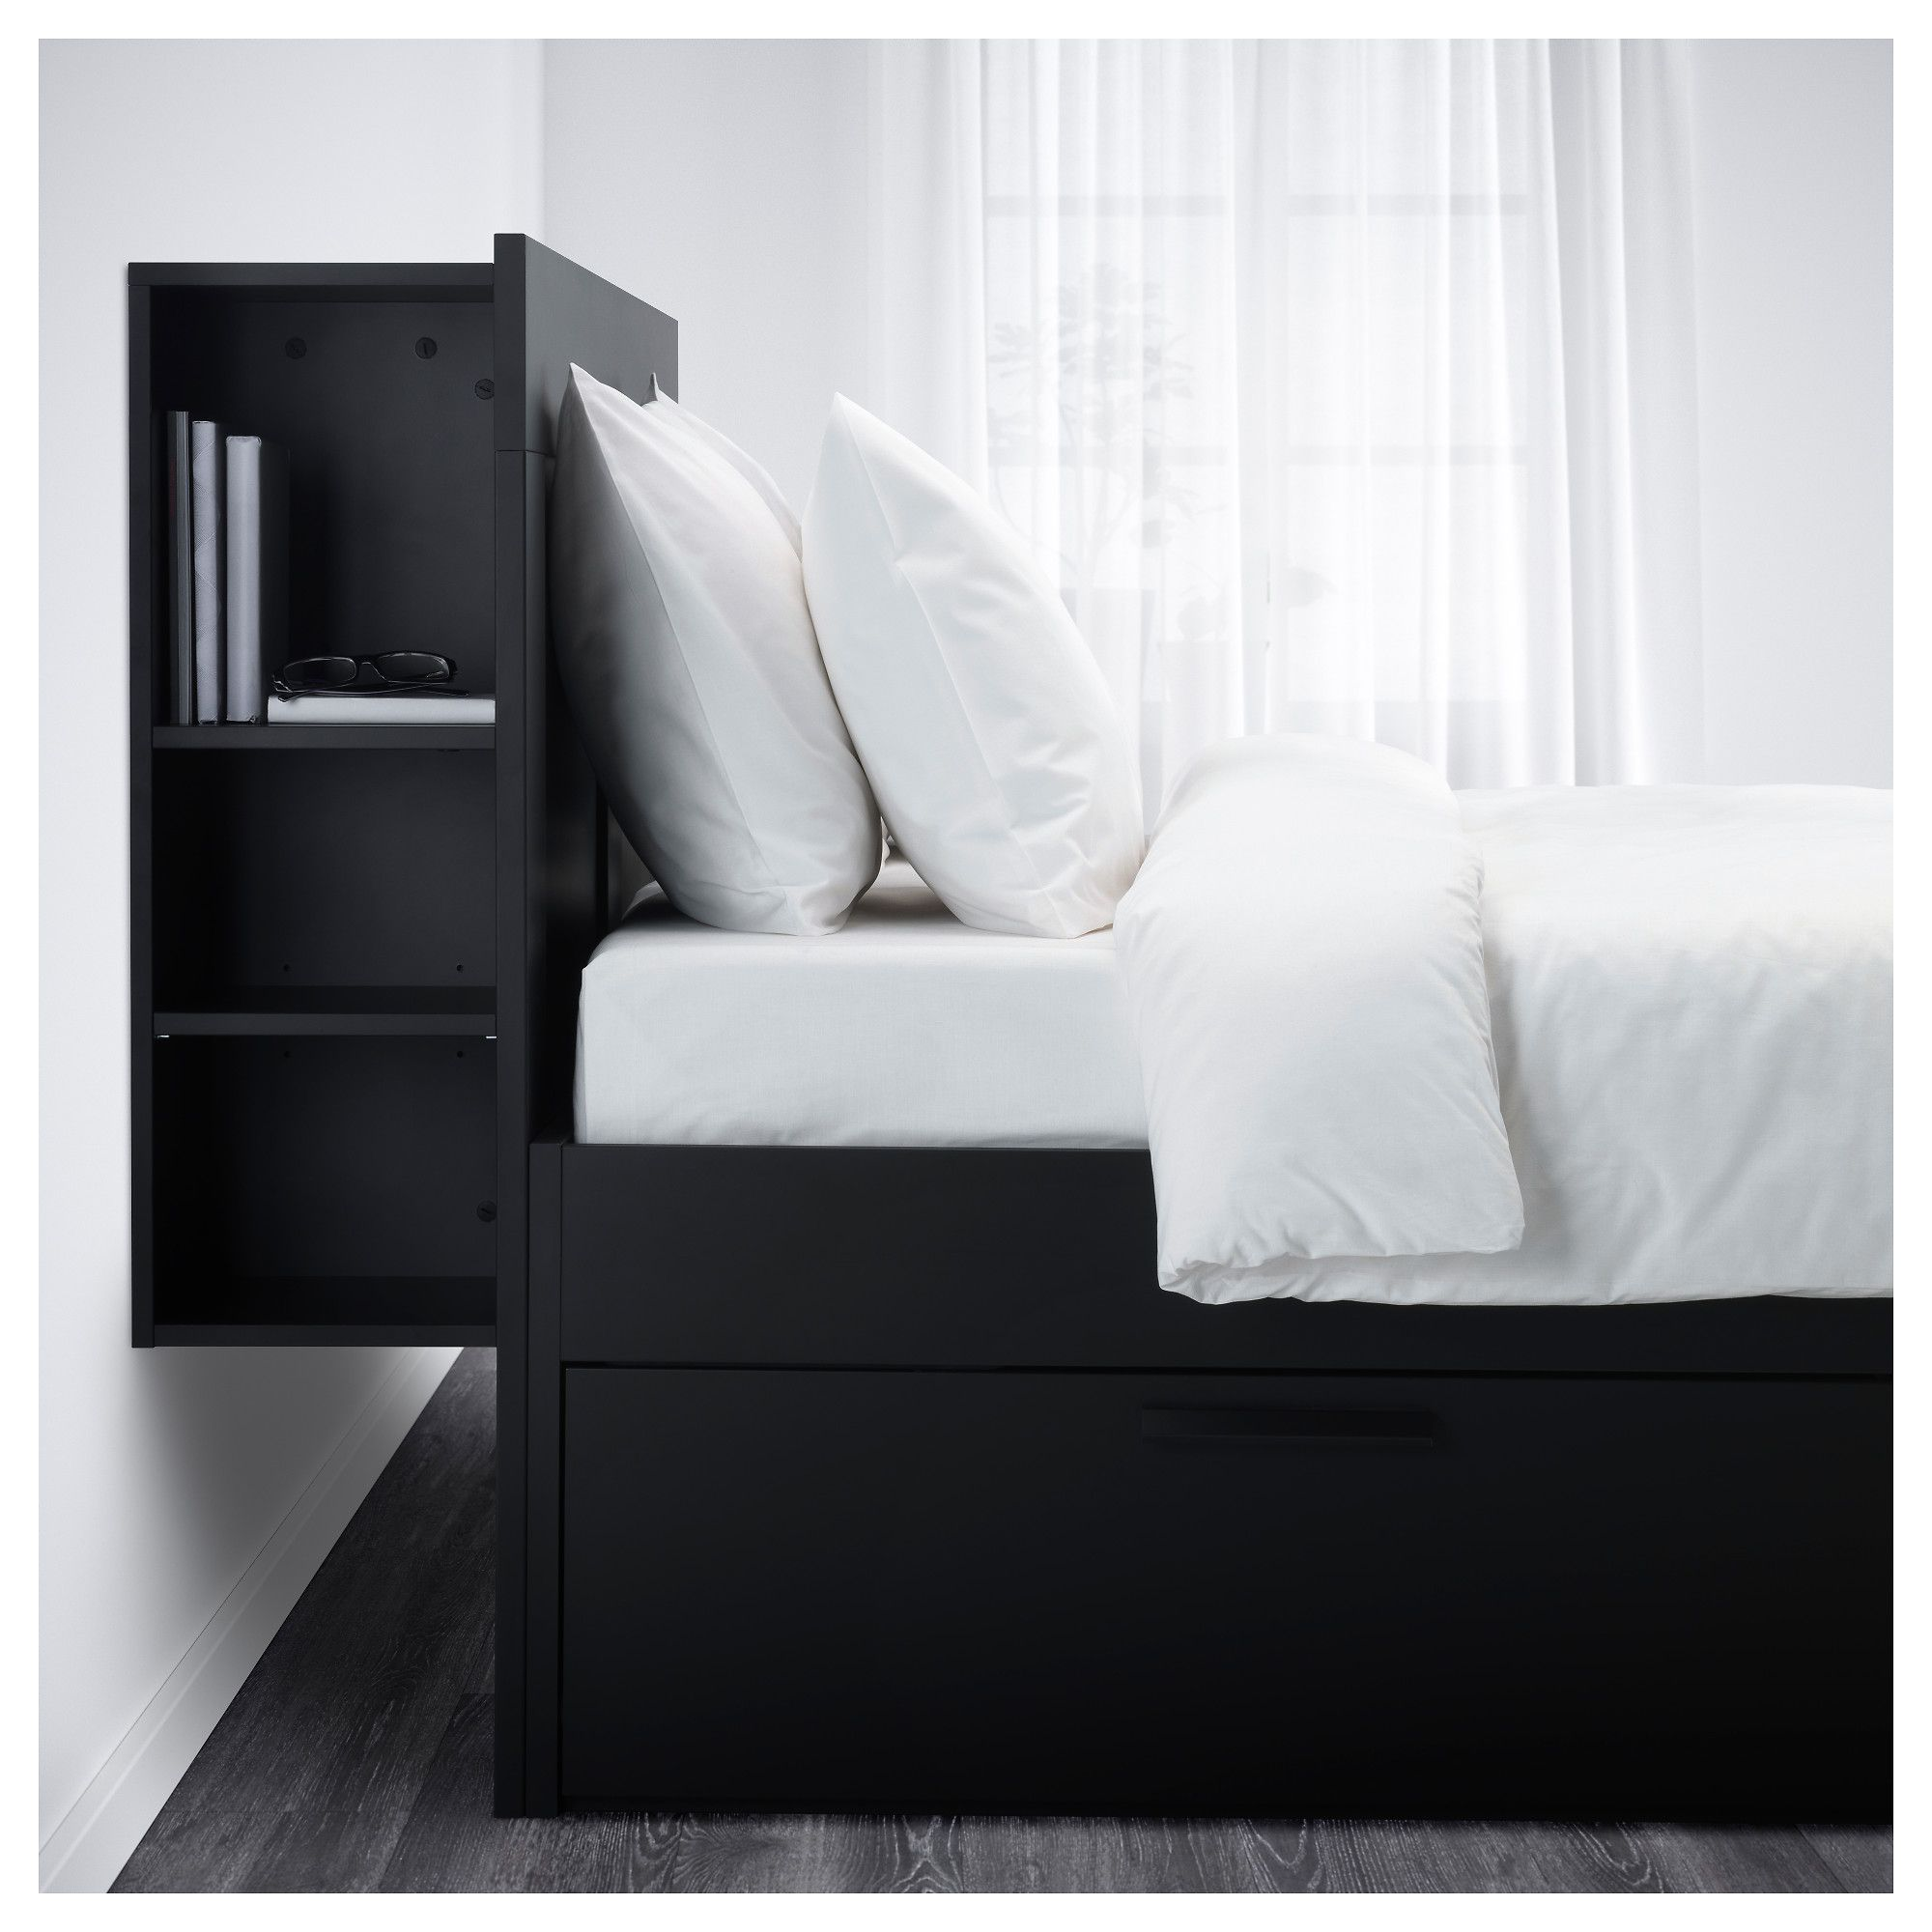 new styles ad7b9 4ac57 IKEA - BRIMNES Bed frame with storage & headboard black ...